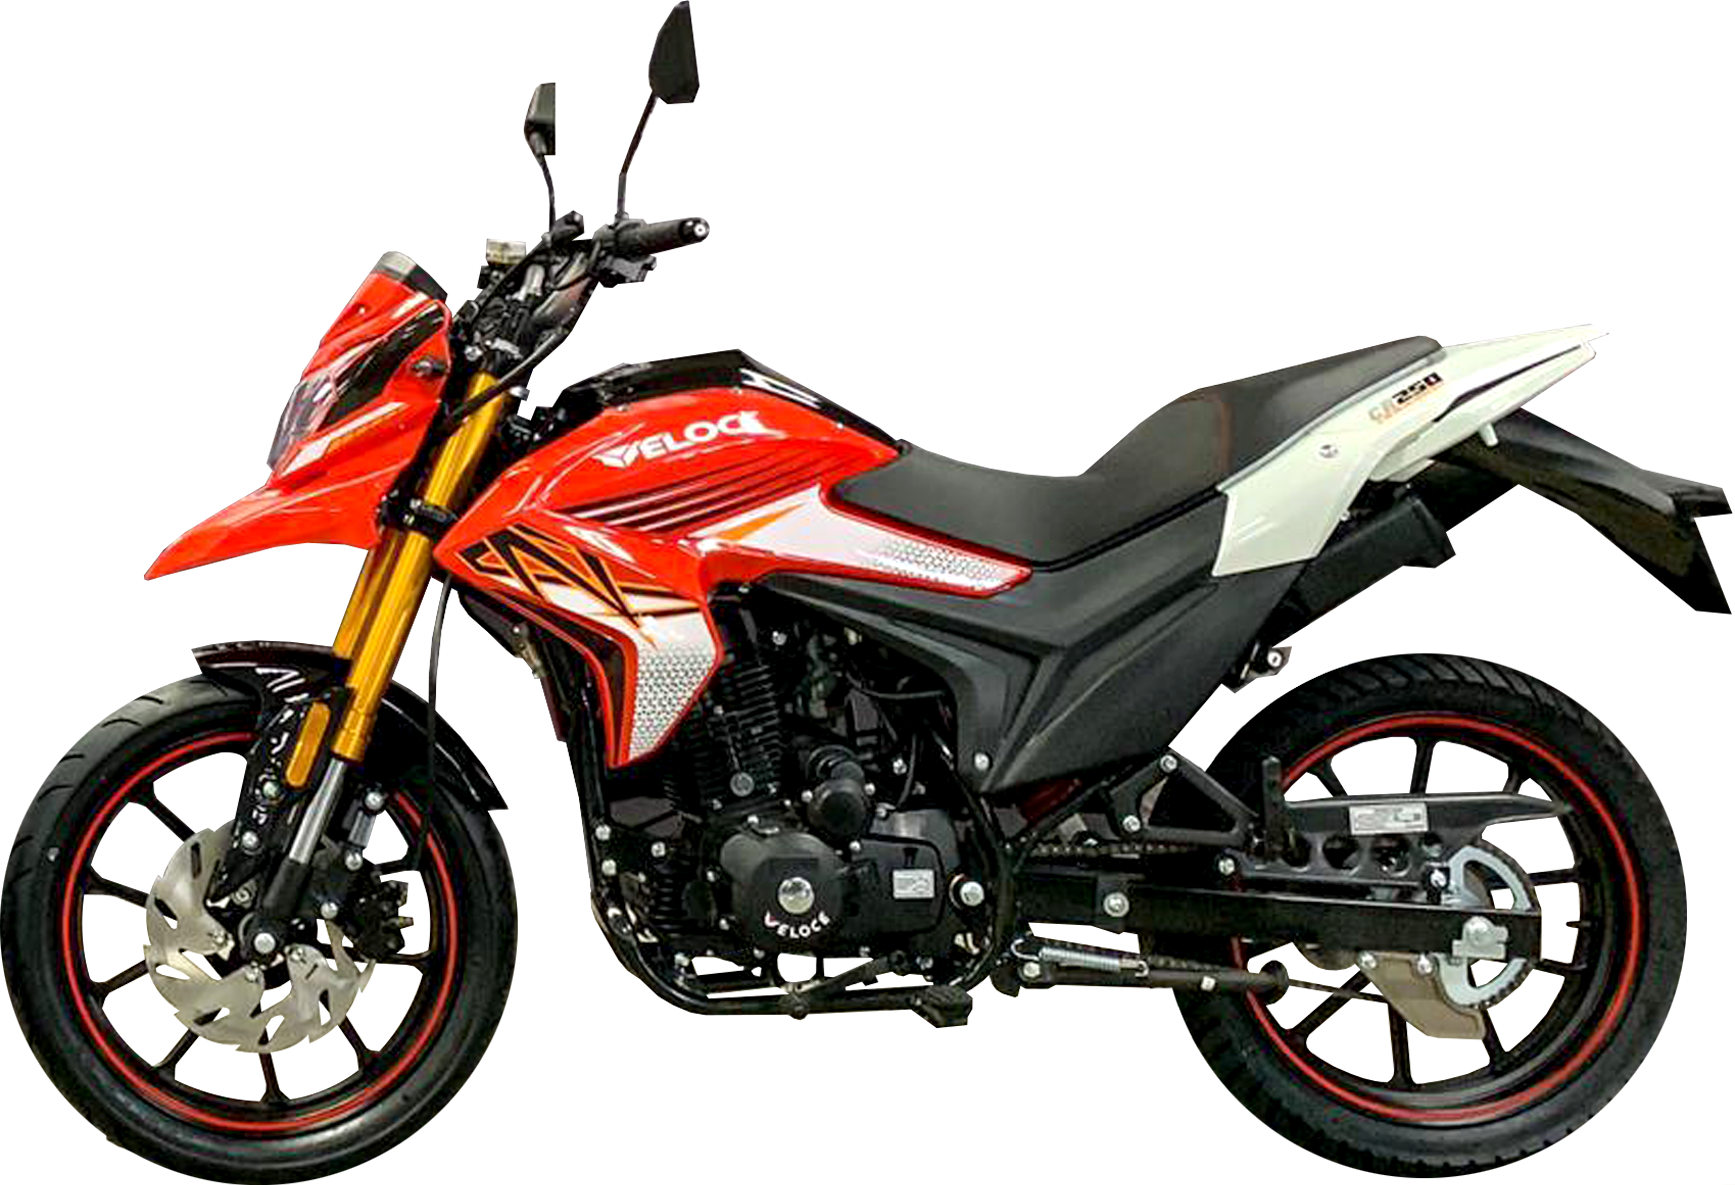 CR 250 - · Engine: 250cc· Air-Cooled· Supermoto Wheels· 5-Speed Transmission· Street Legal· Colors: Red/BlueRequest Parts>Request Service>